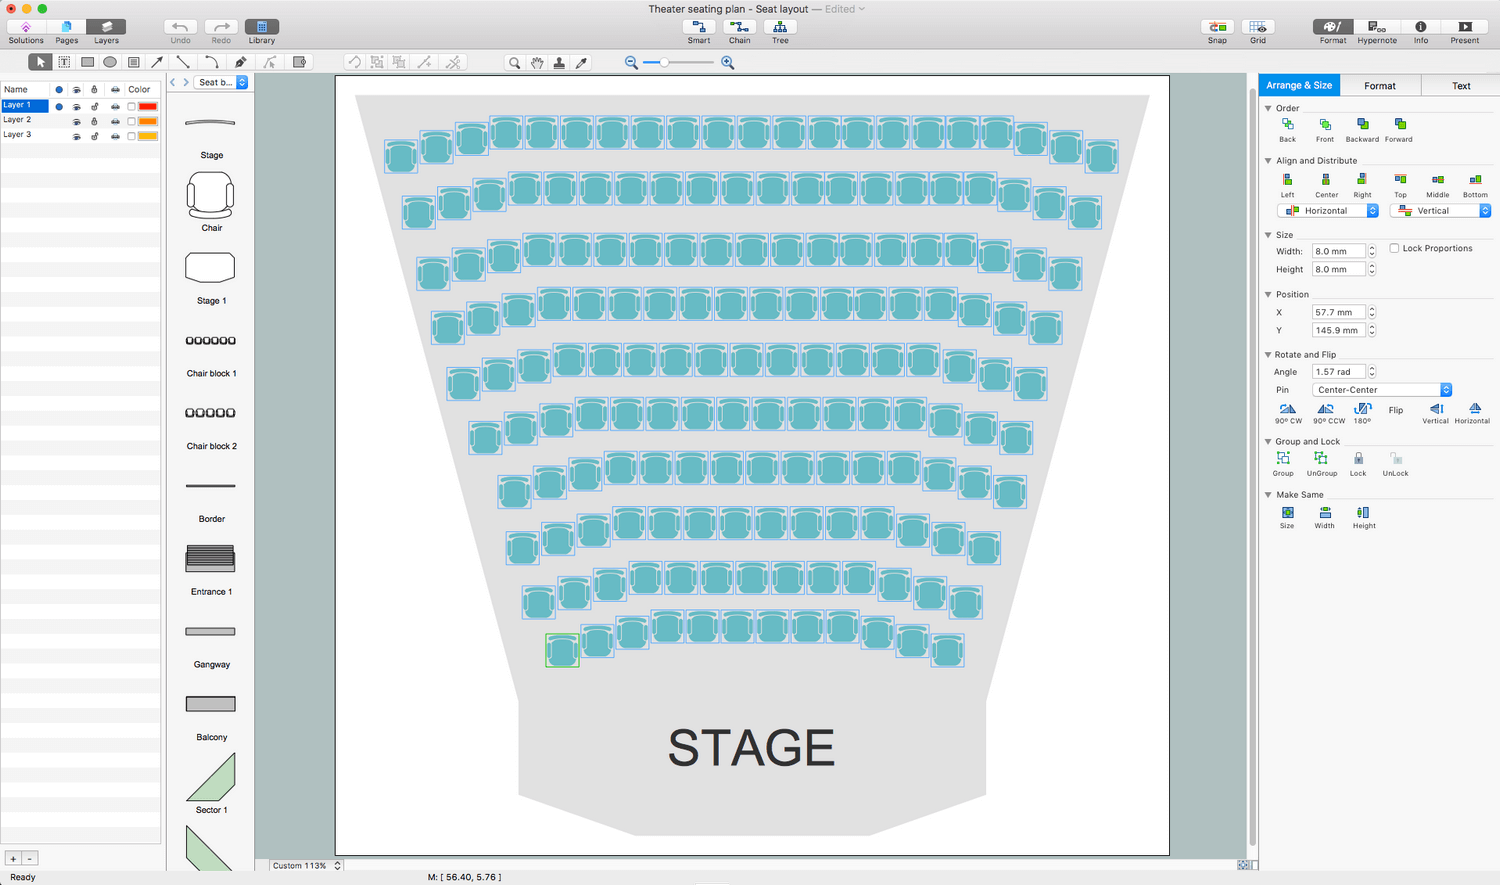 Seating Plans Solution for Apple macOS